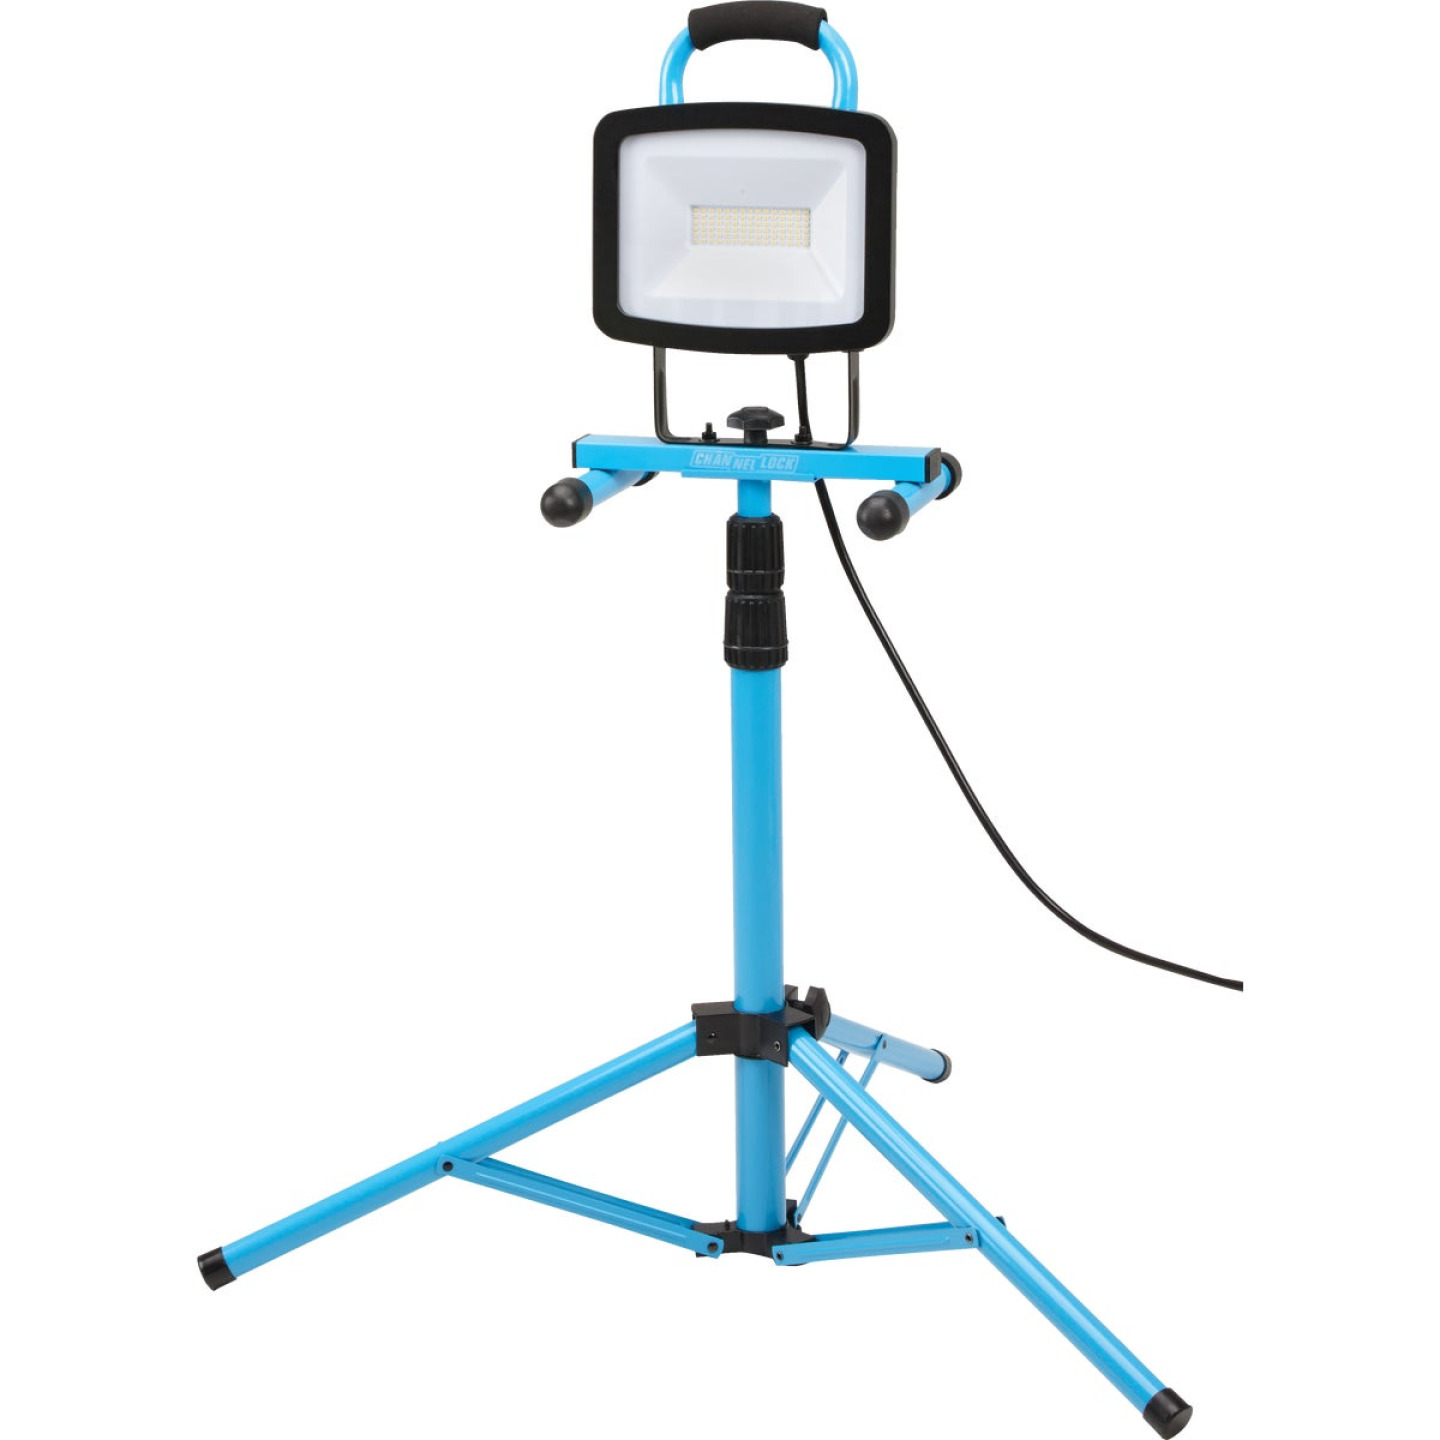 Channellock 6600 Lm. LED Tripod Stand-Up Work Light Image 4